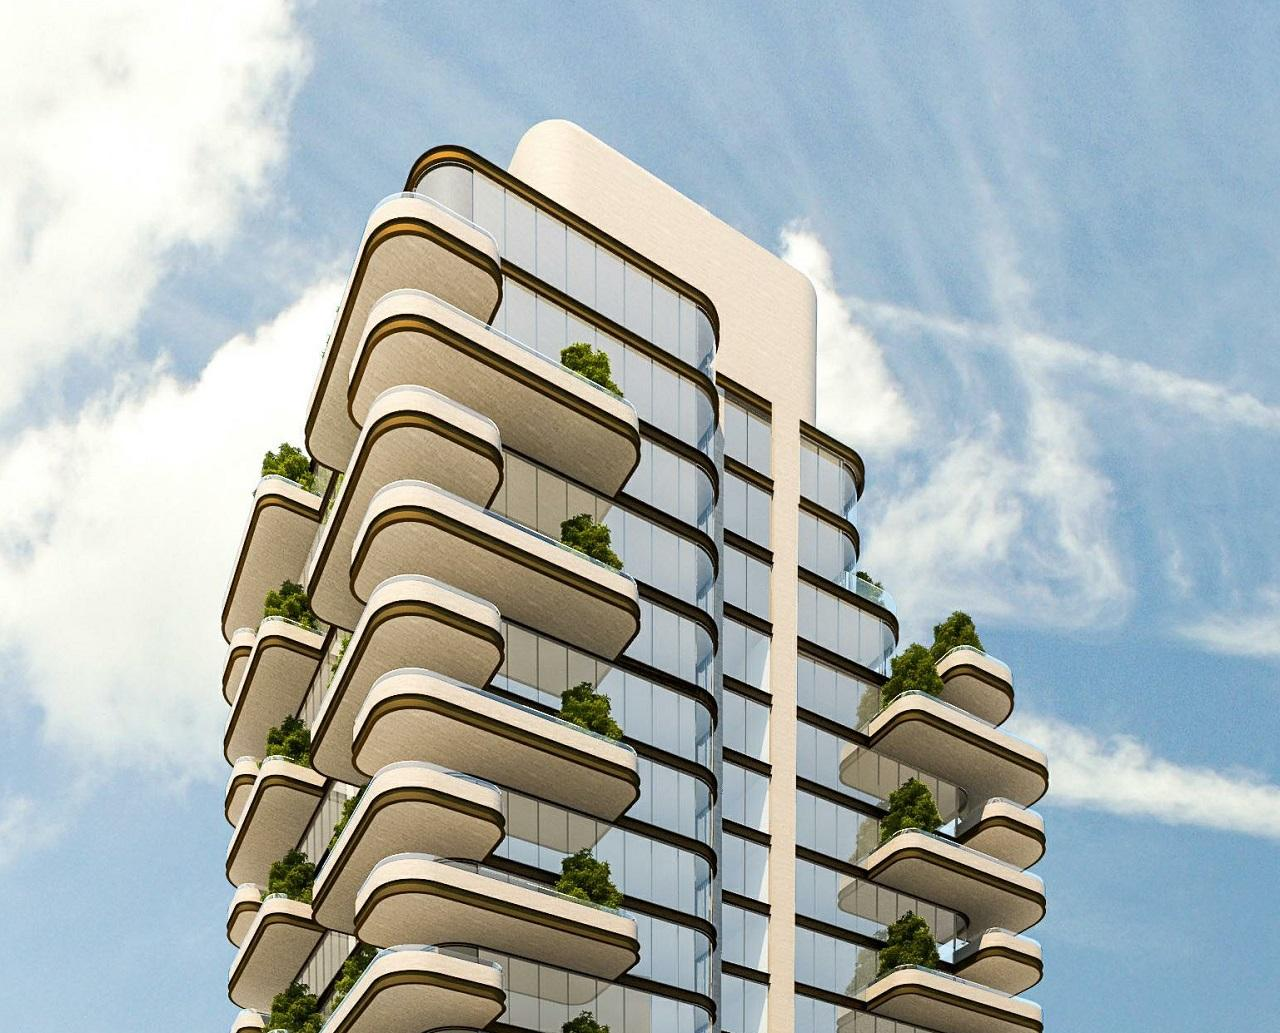 Rendering of 33 Avenue Road Condos top half during the day.